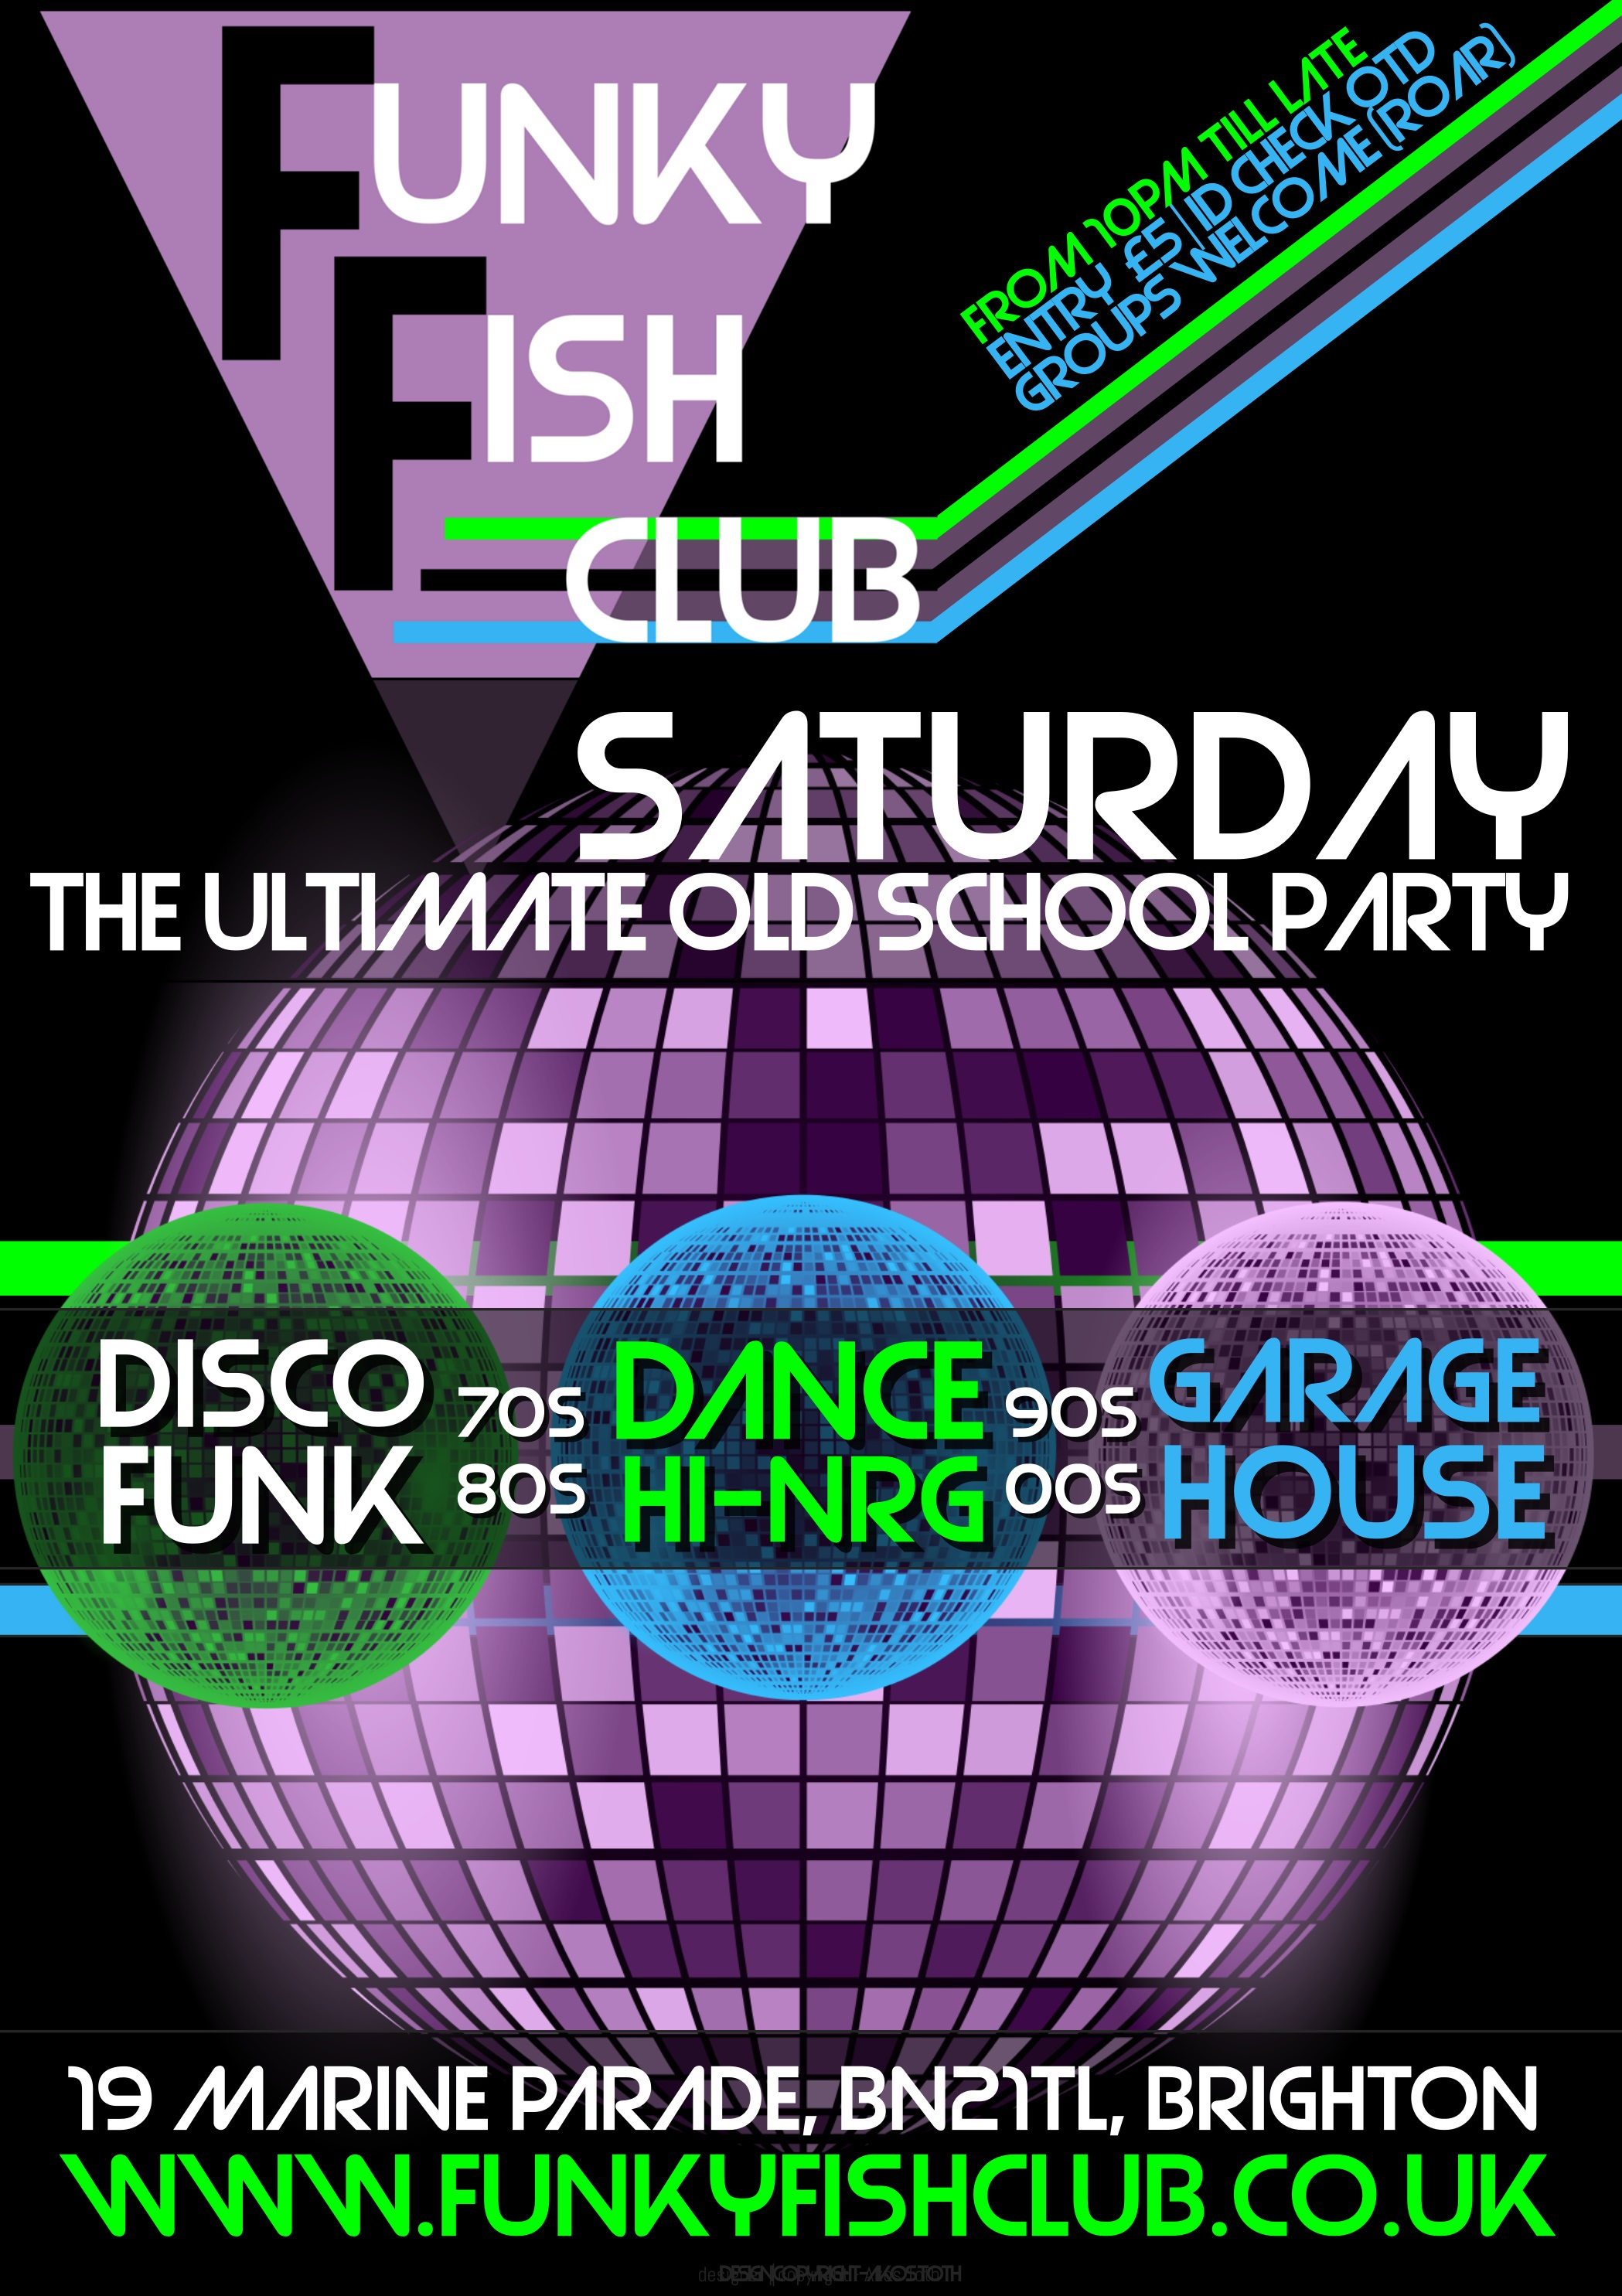 The Ultimate Old School Party - FunkyFish Club Brighton